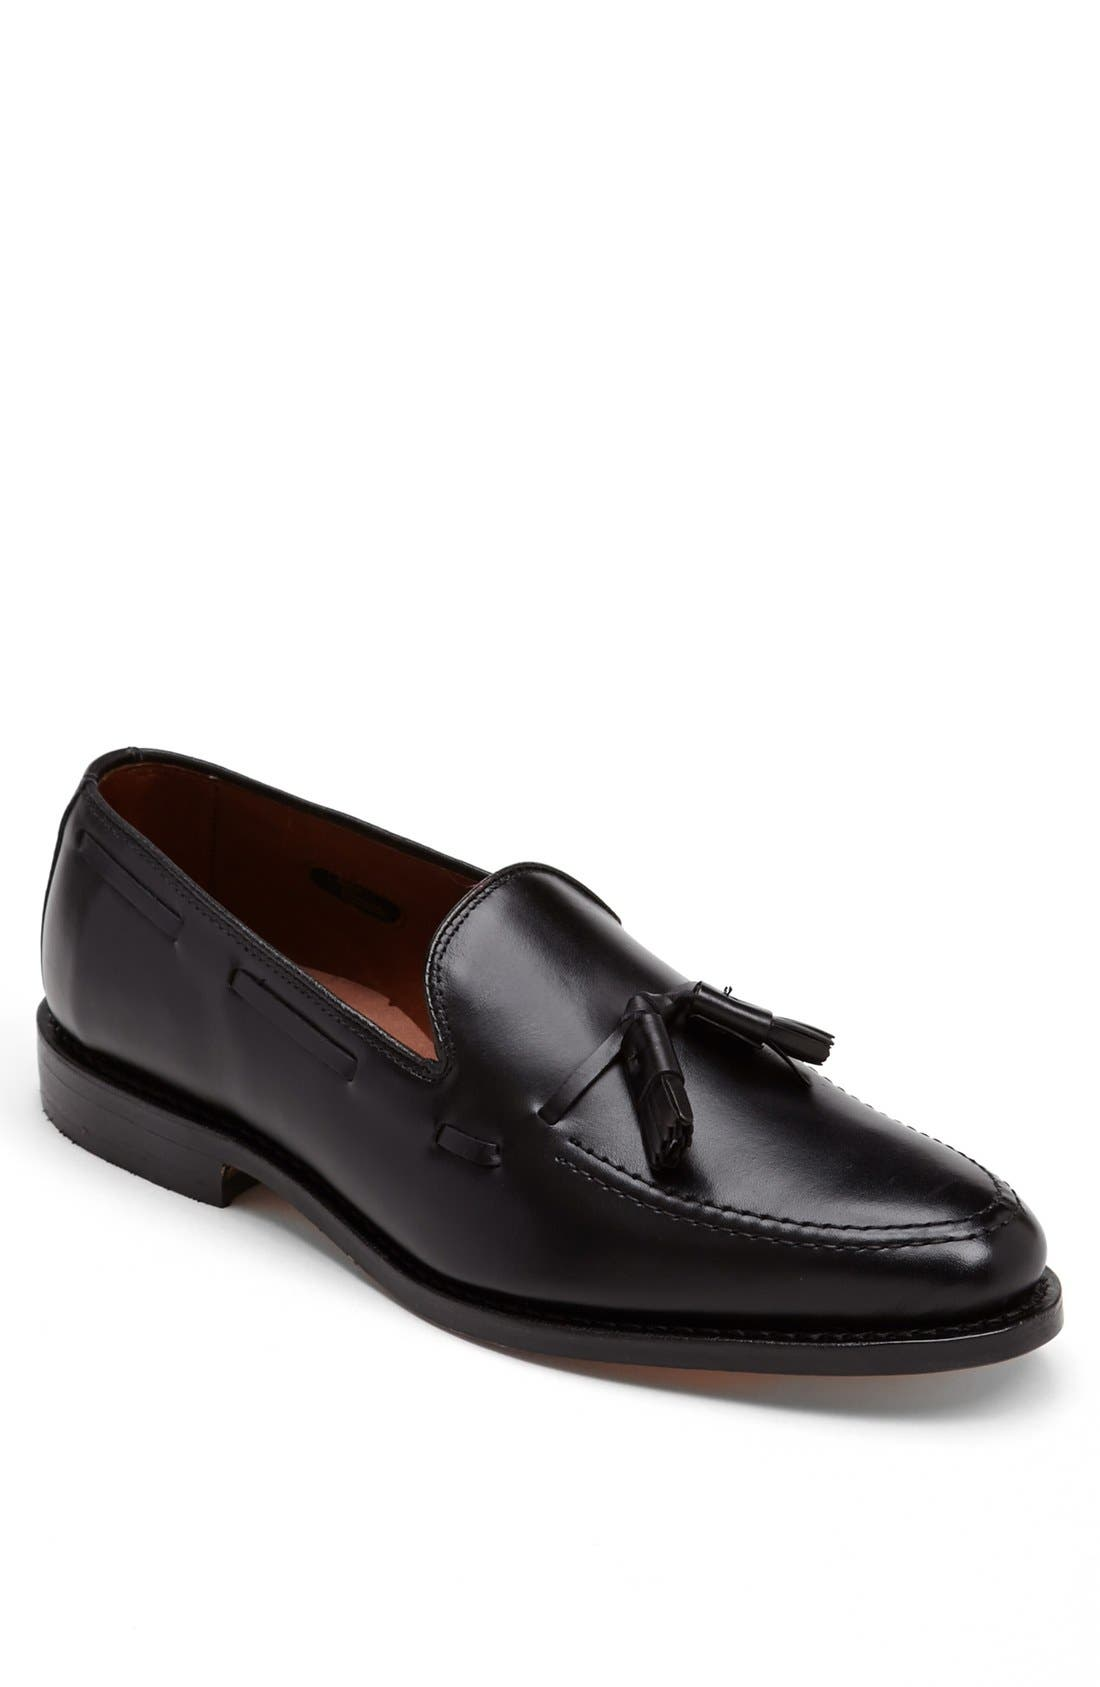 Alternate Image 1 Selected - Allen Edmonds 'Grayson' Tassel Loafer (Men)